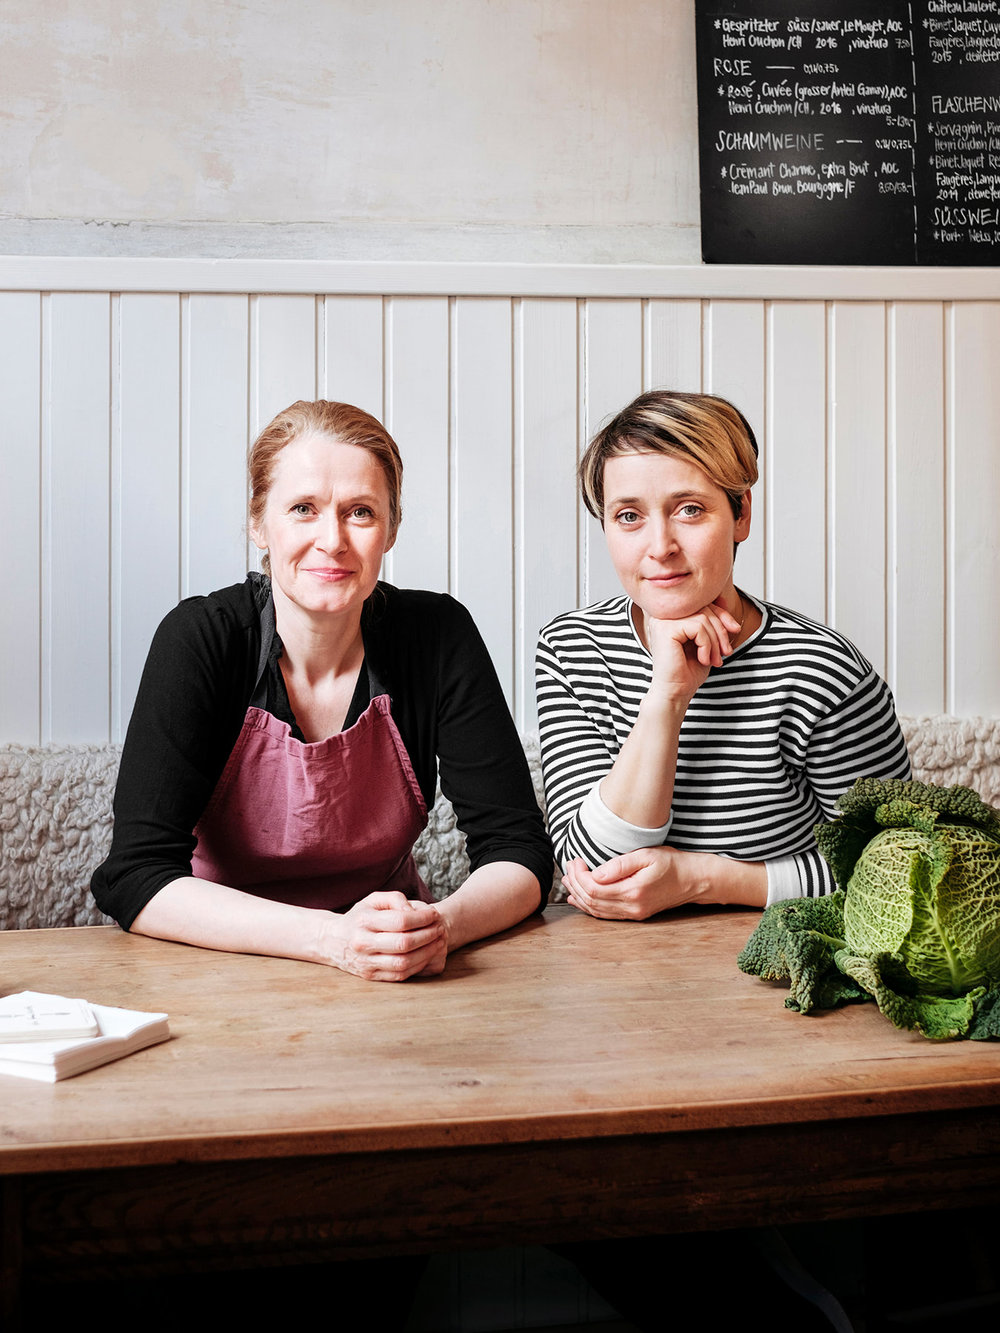 """Claire Guerrier and Maya Totaro owners of Bio restaurant """"La Fourchette"""" in Basel, Switzerland. Shot for Monocle."""